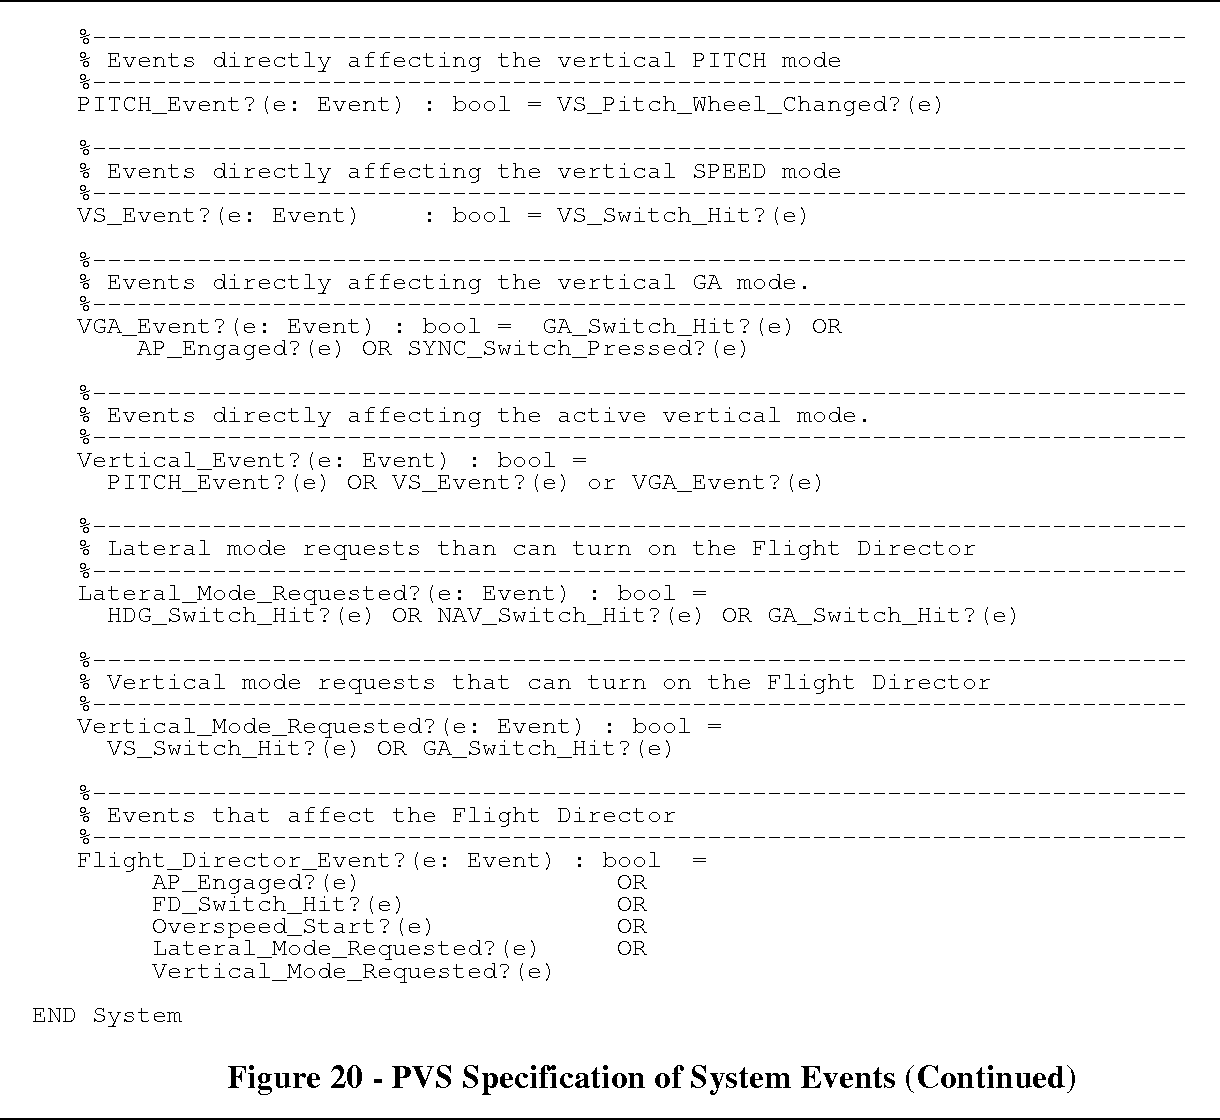 Figure 20 - PVS Specification of System Events (Continued)